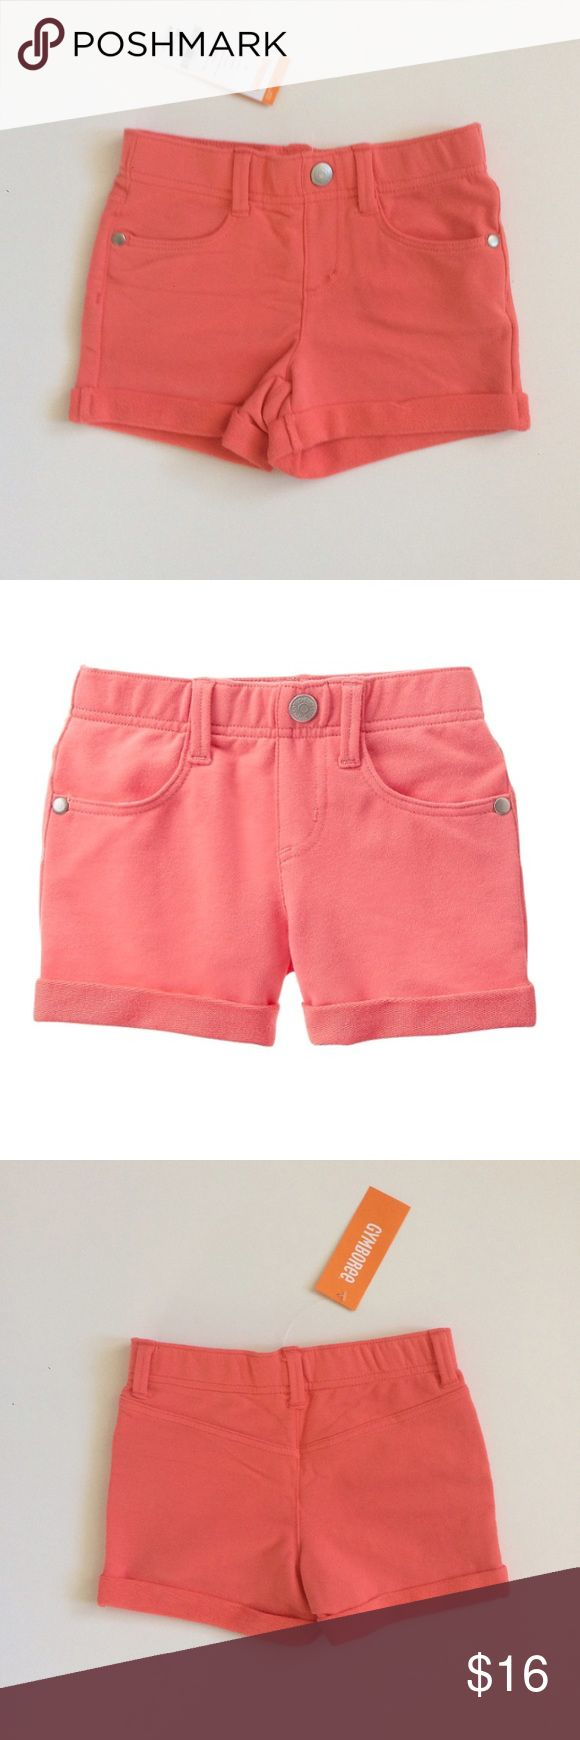 Coral shorts Coral shorts new with tag, front pockets and a mock fly. Has some stretch. Gymboree Bottoms Skorts